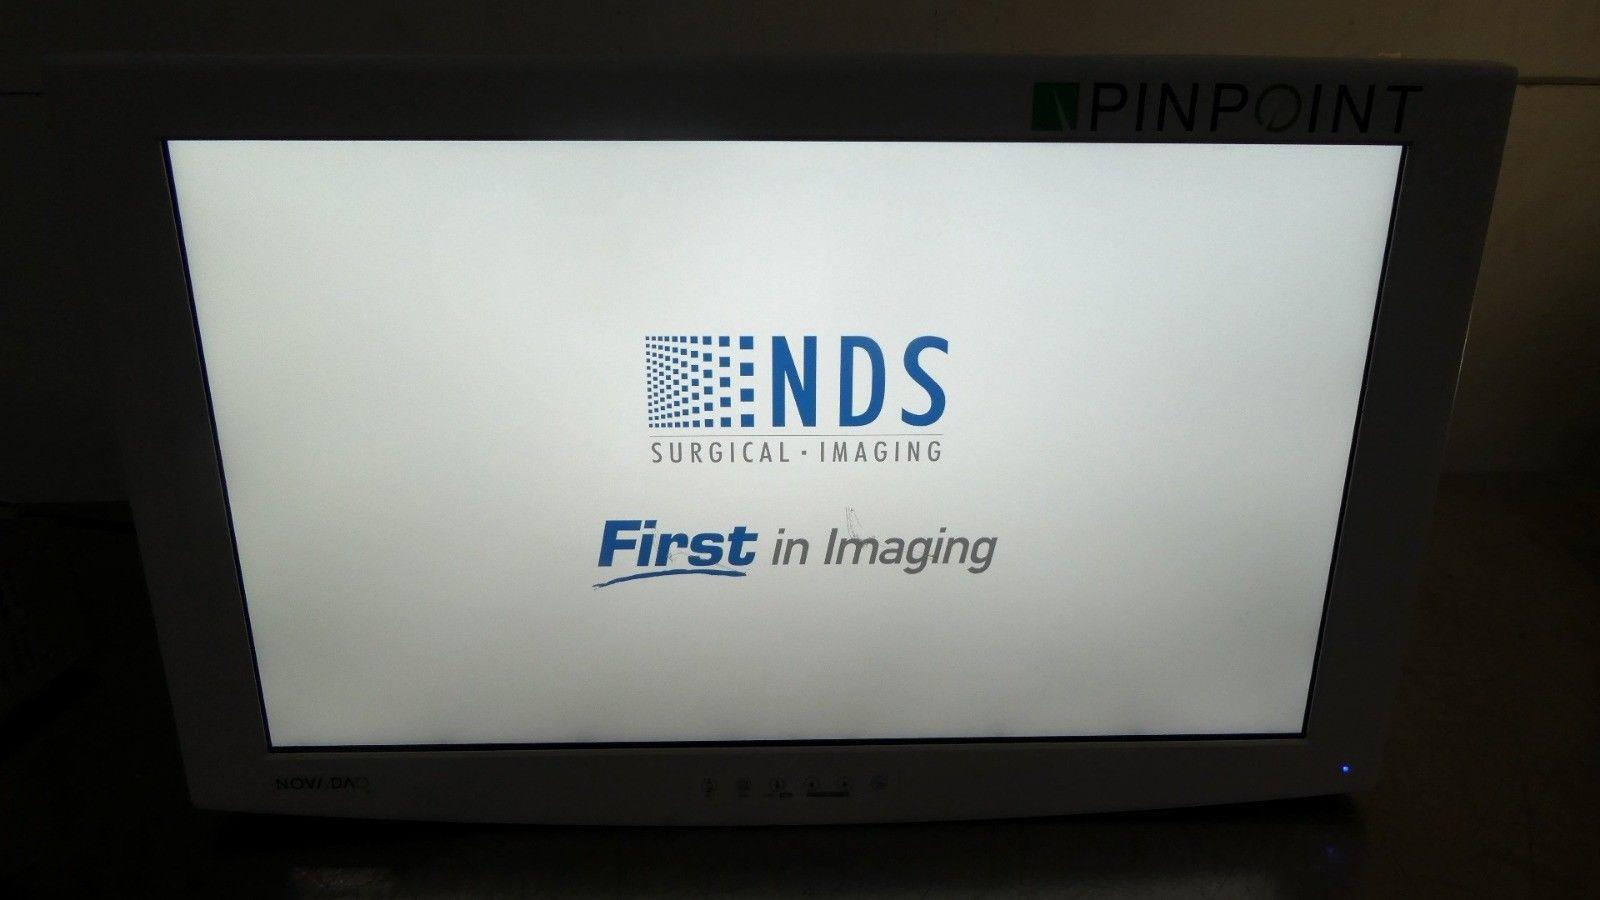 "R156343 Novadaq Pinpoint NDS 26"" Endoscopic Fluorescence Imaging Monitor G2 HB"